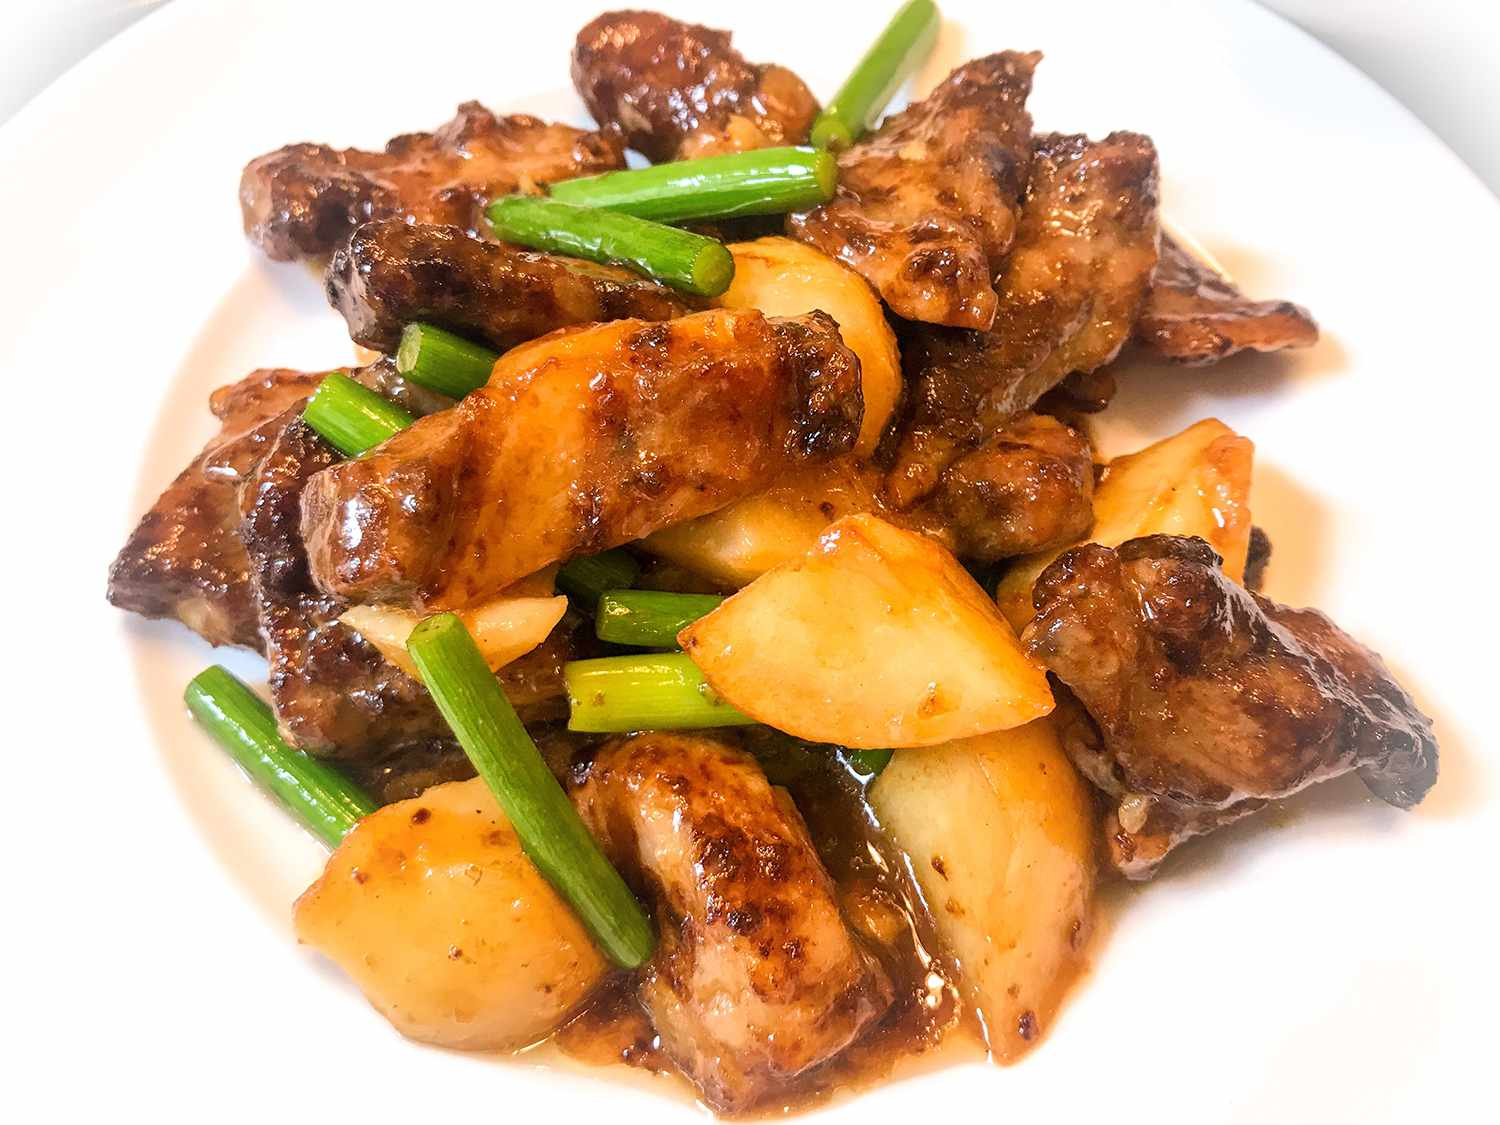 Braised pork soft bone spareribs with potatoes and garlic scapes